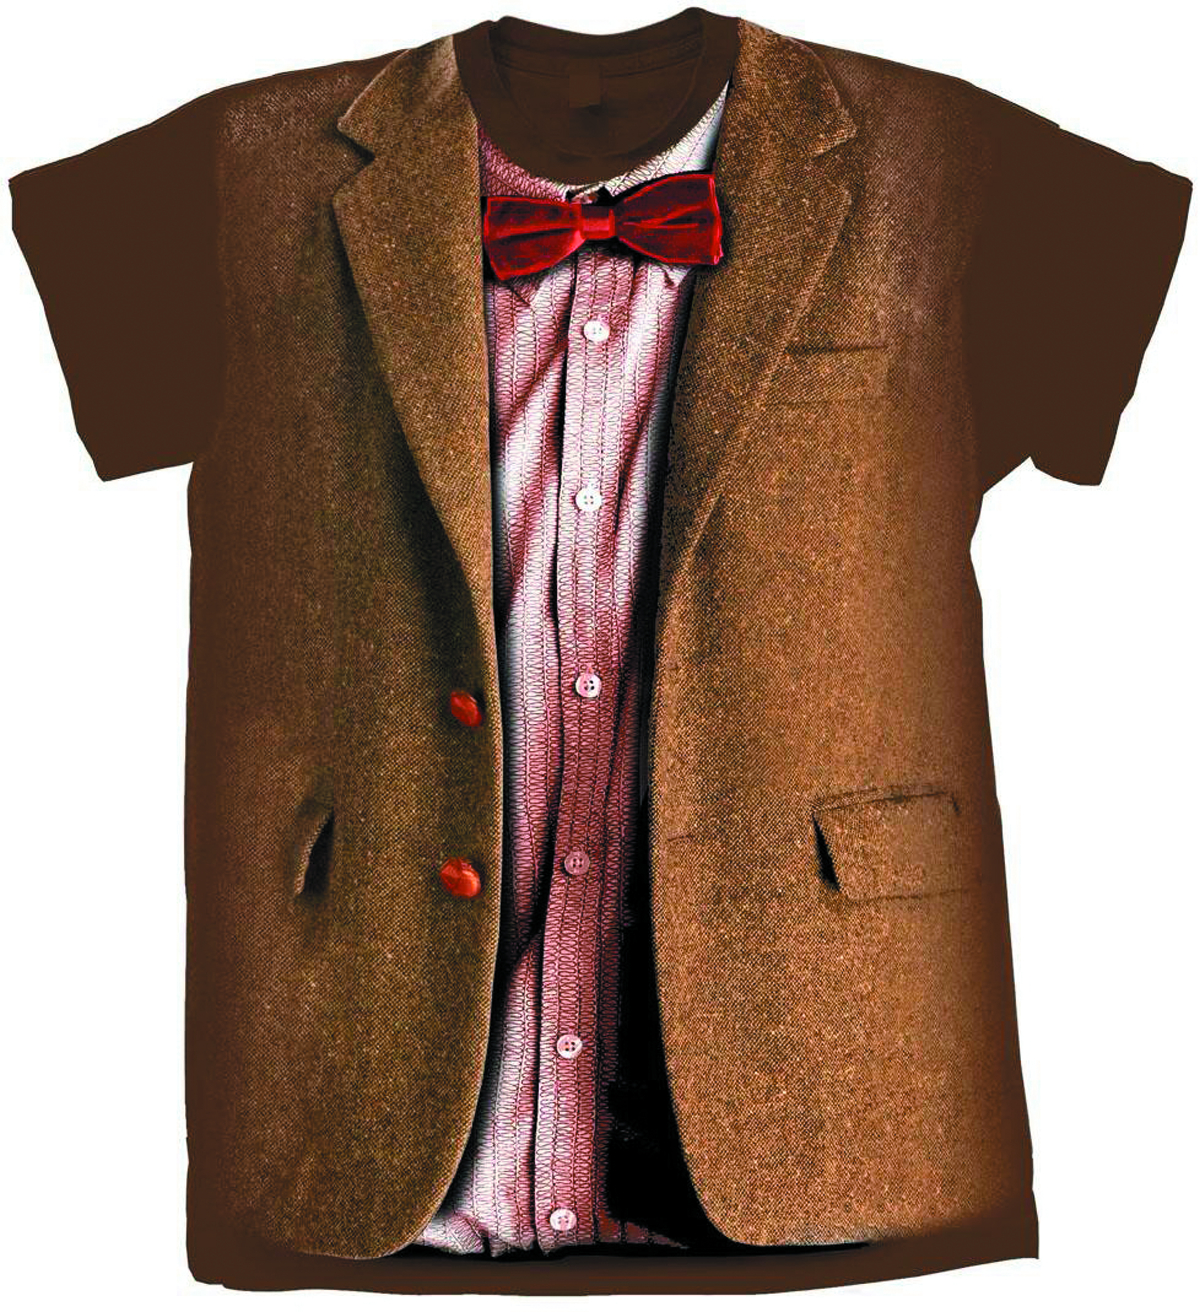 DOCTOR WHO ELEVENTH DOCTOR COSTUME T/S SM